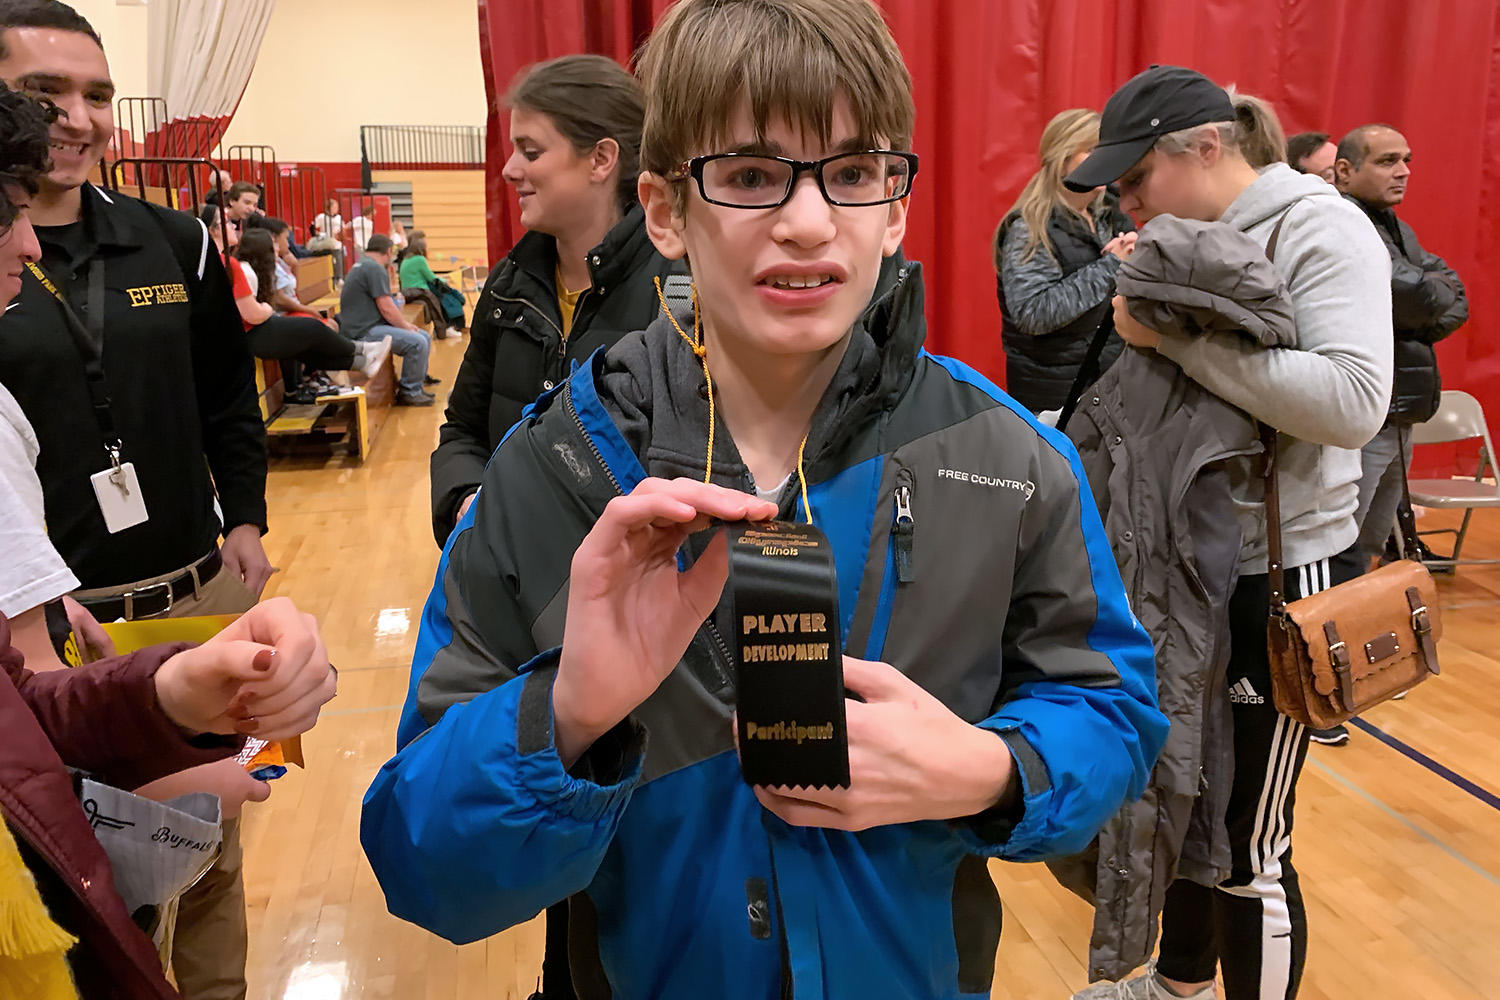 Jonathan from EPHS displays his player development ribbon that he received at the Special Olympics Illinois basketball skills event.